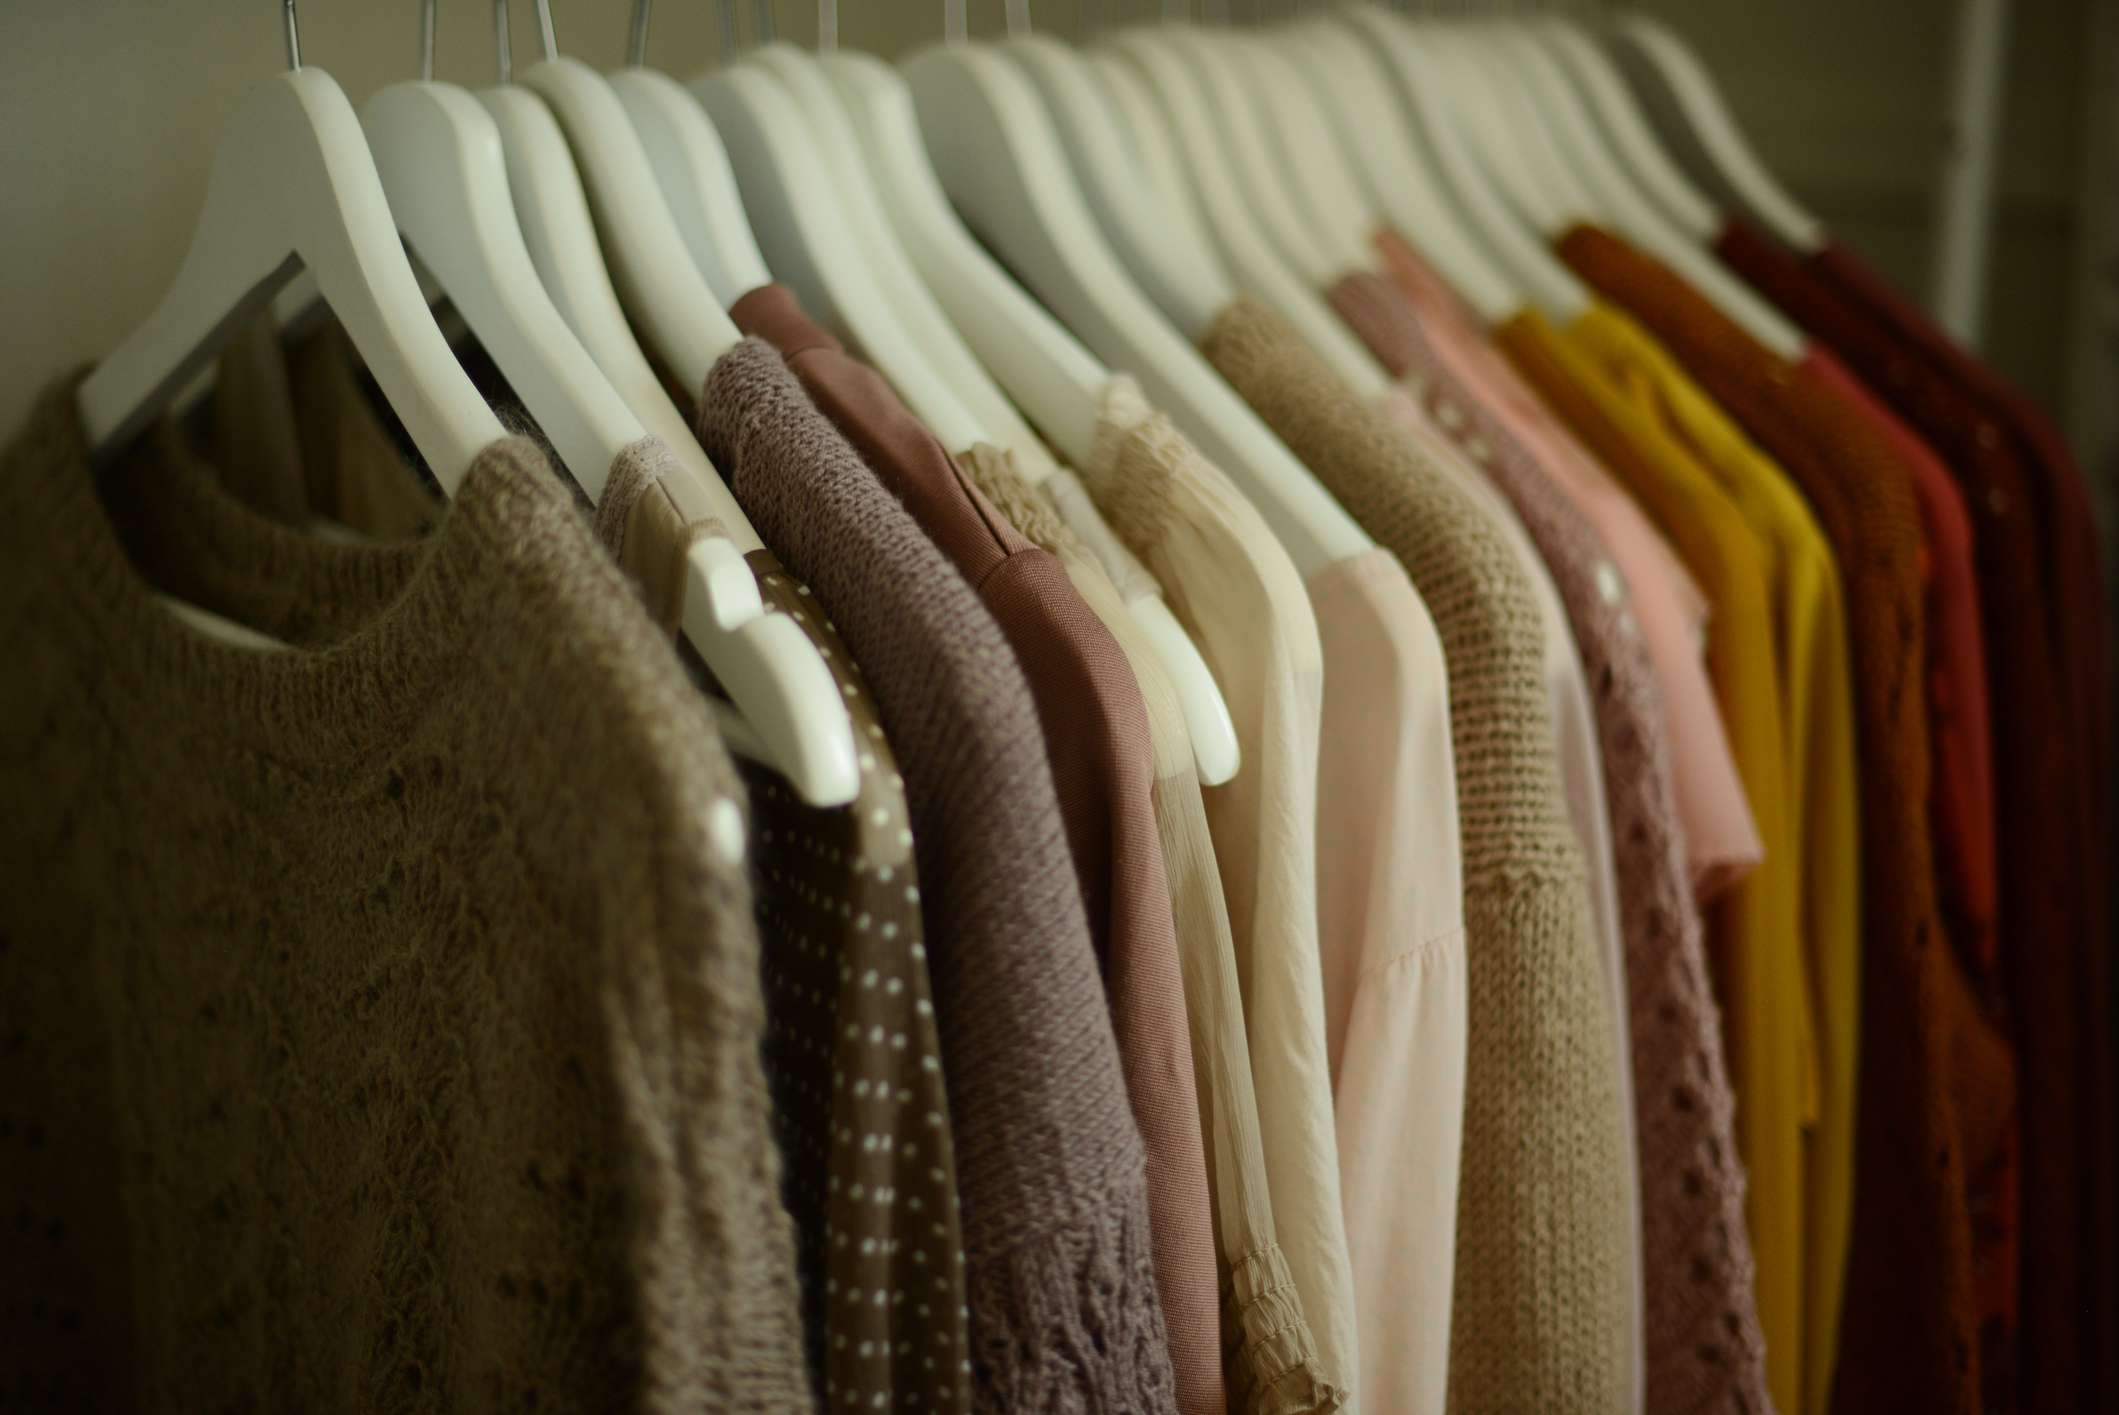 Color-coded sweaters and blouses on hangers